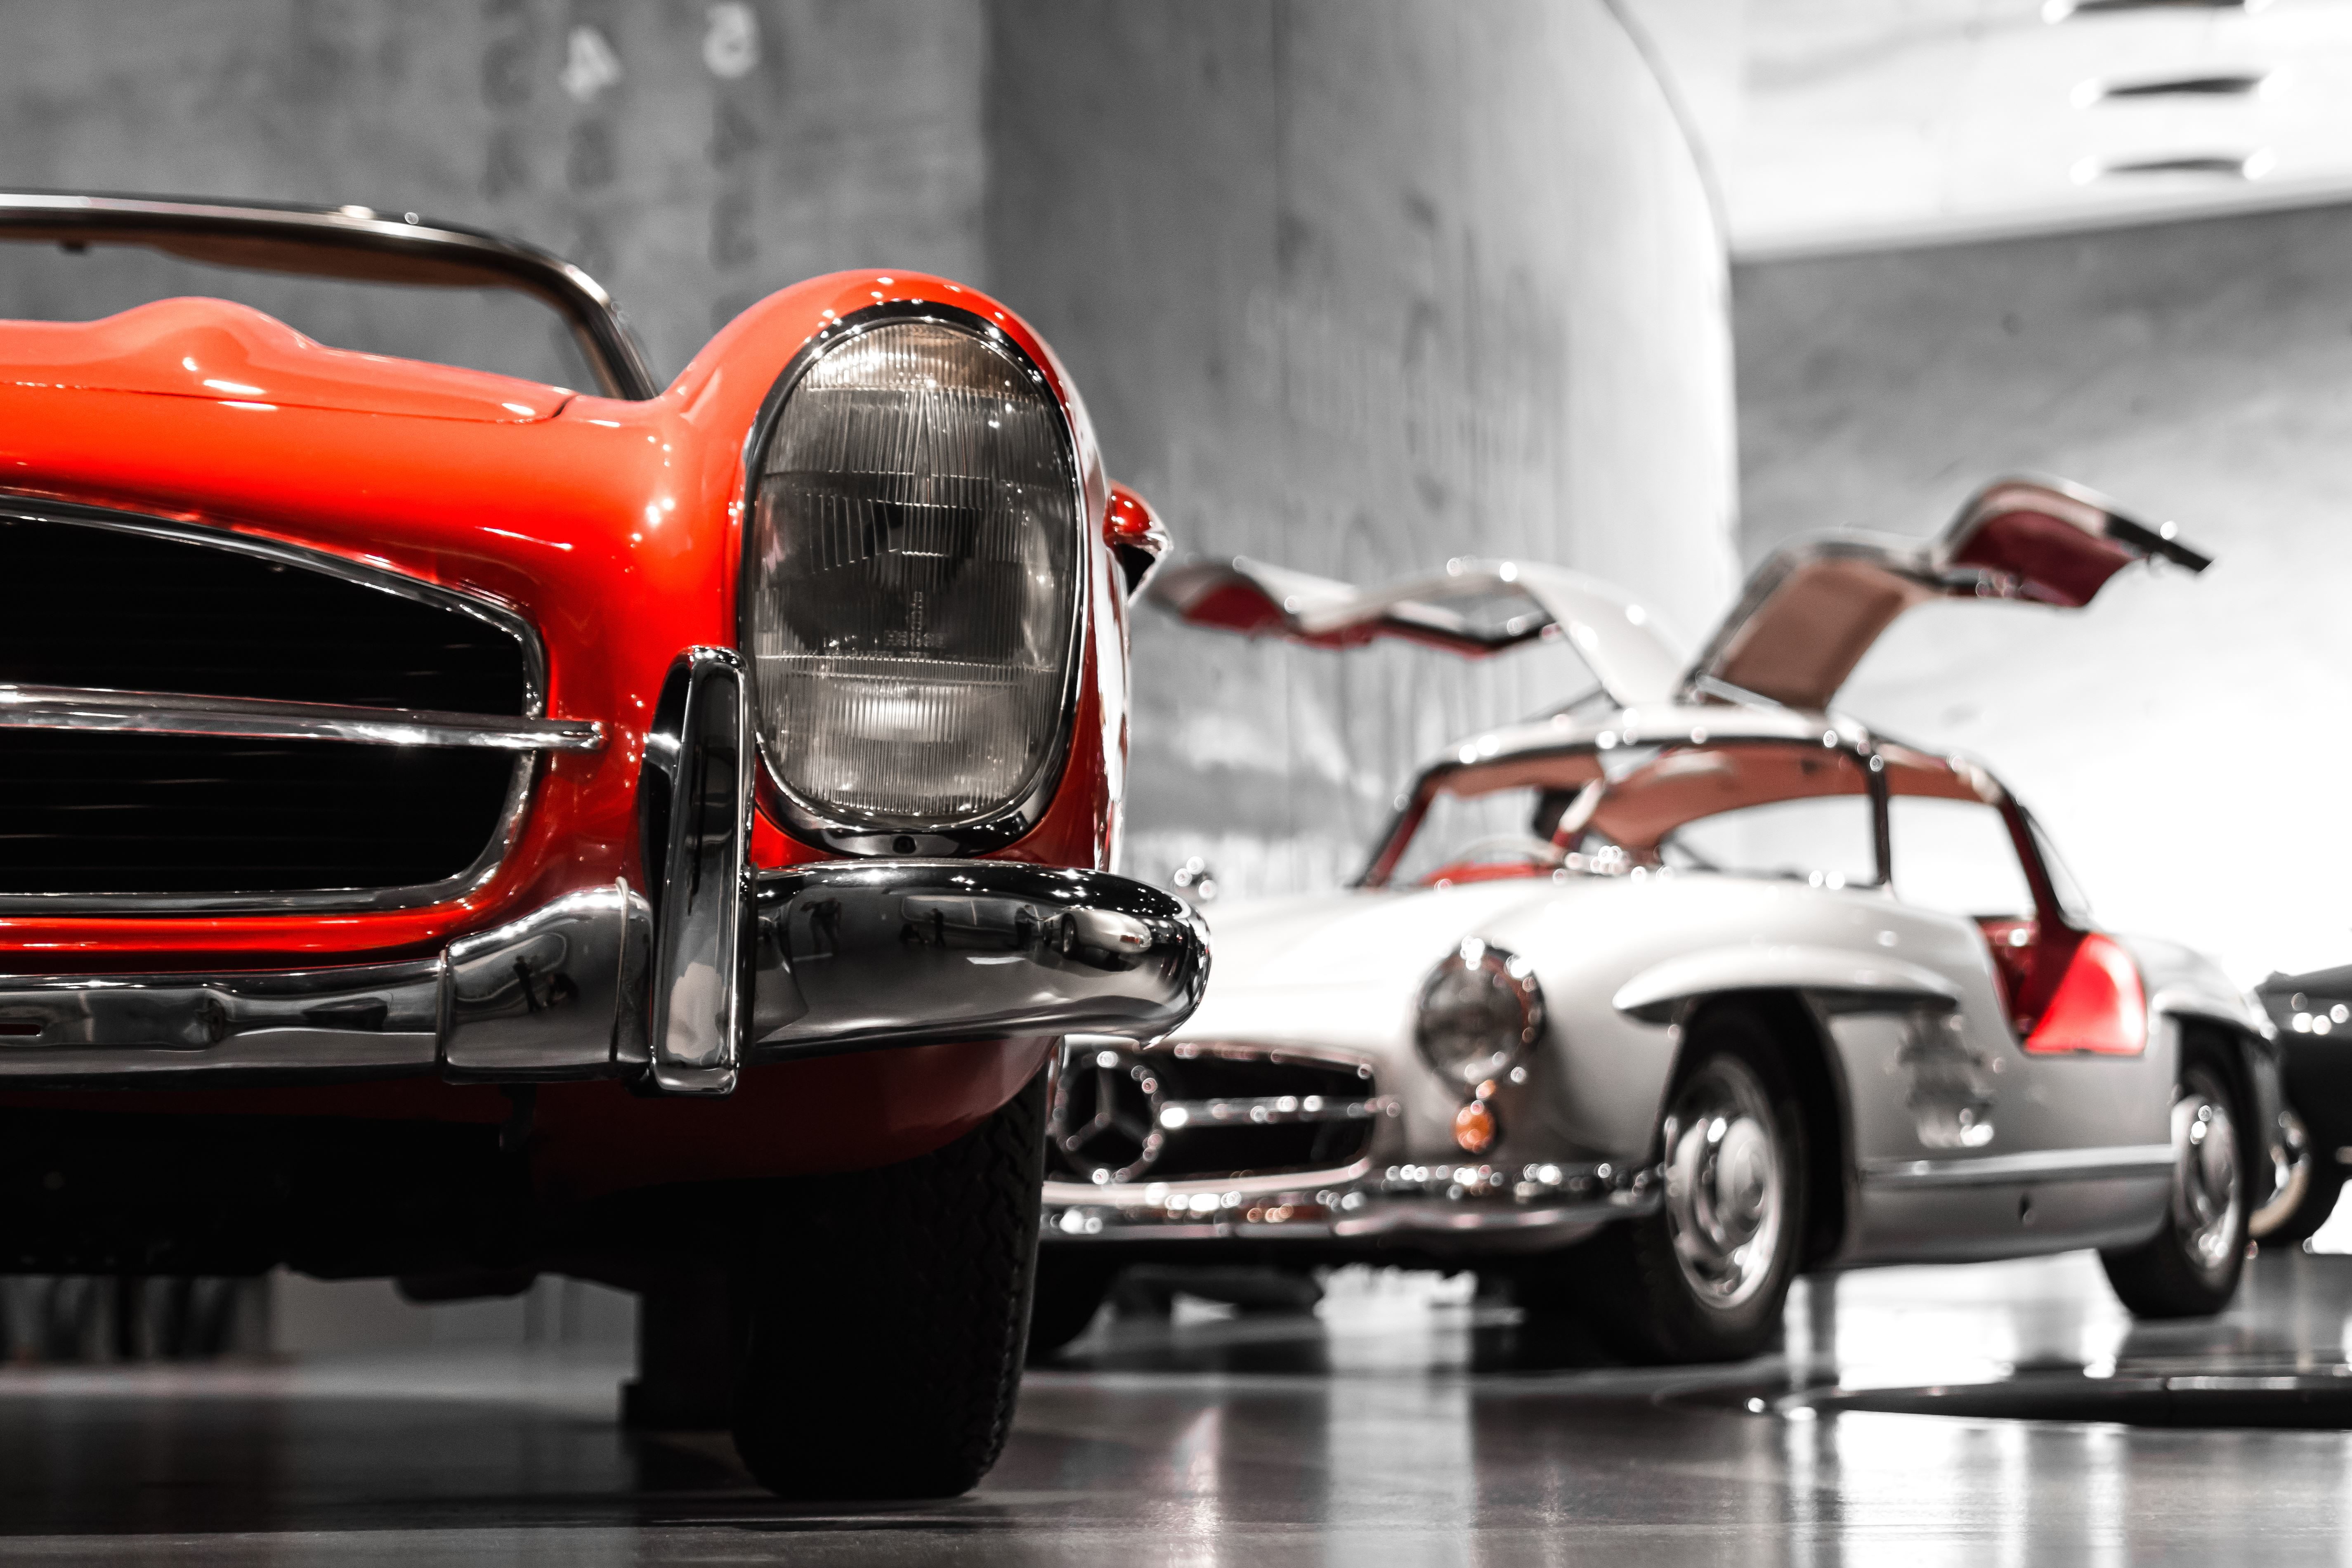 Free picture: classic car, Mercedes Benz car, car saloon, luxury